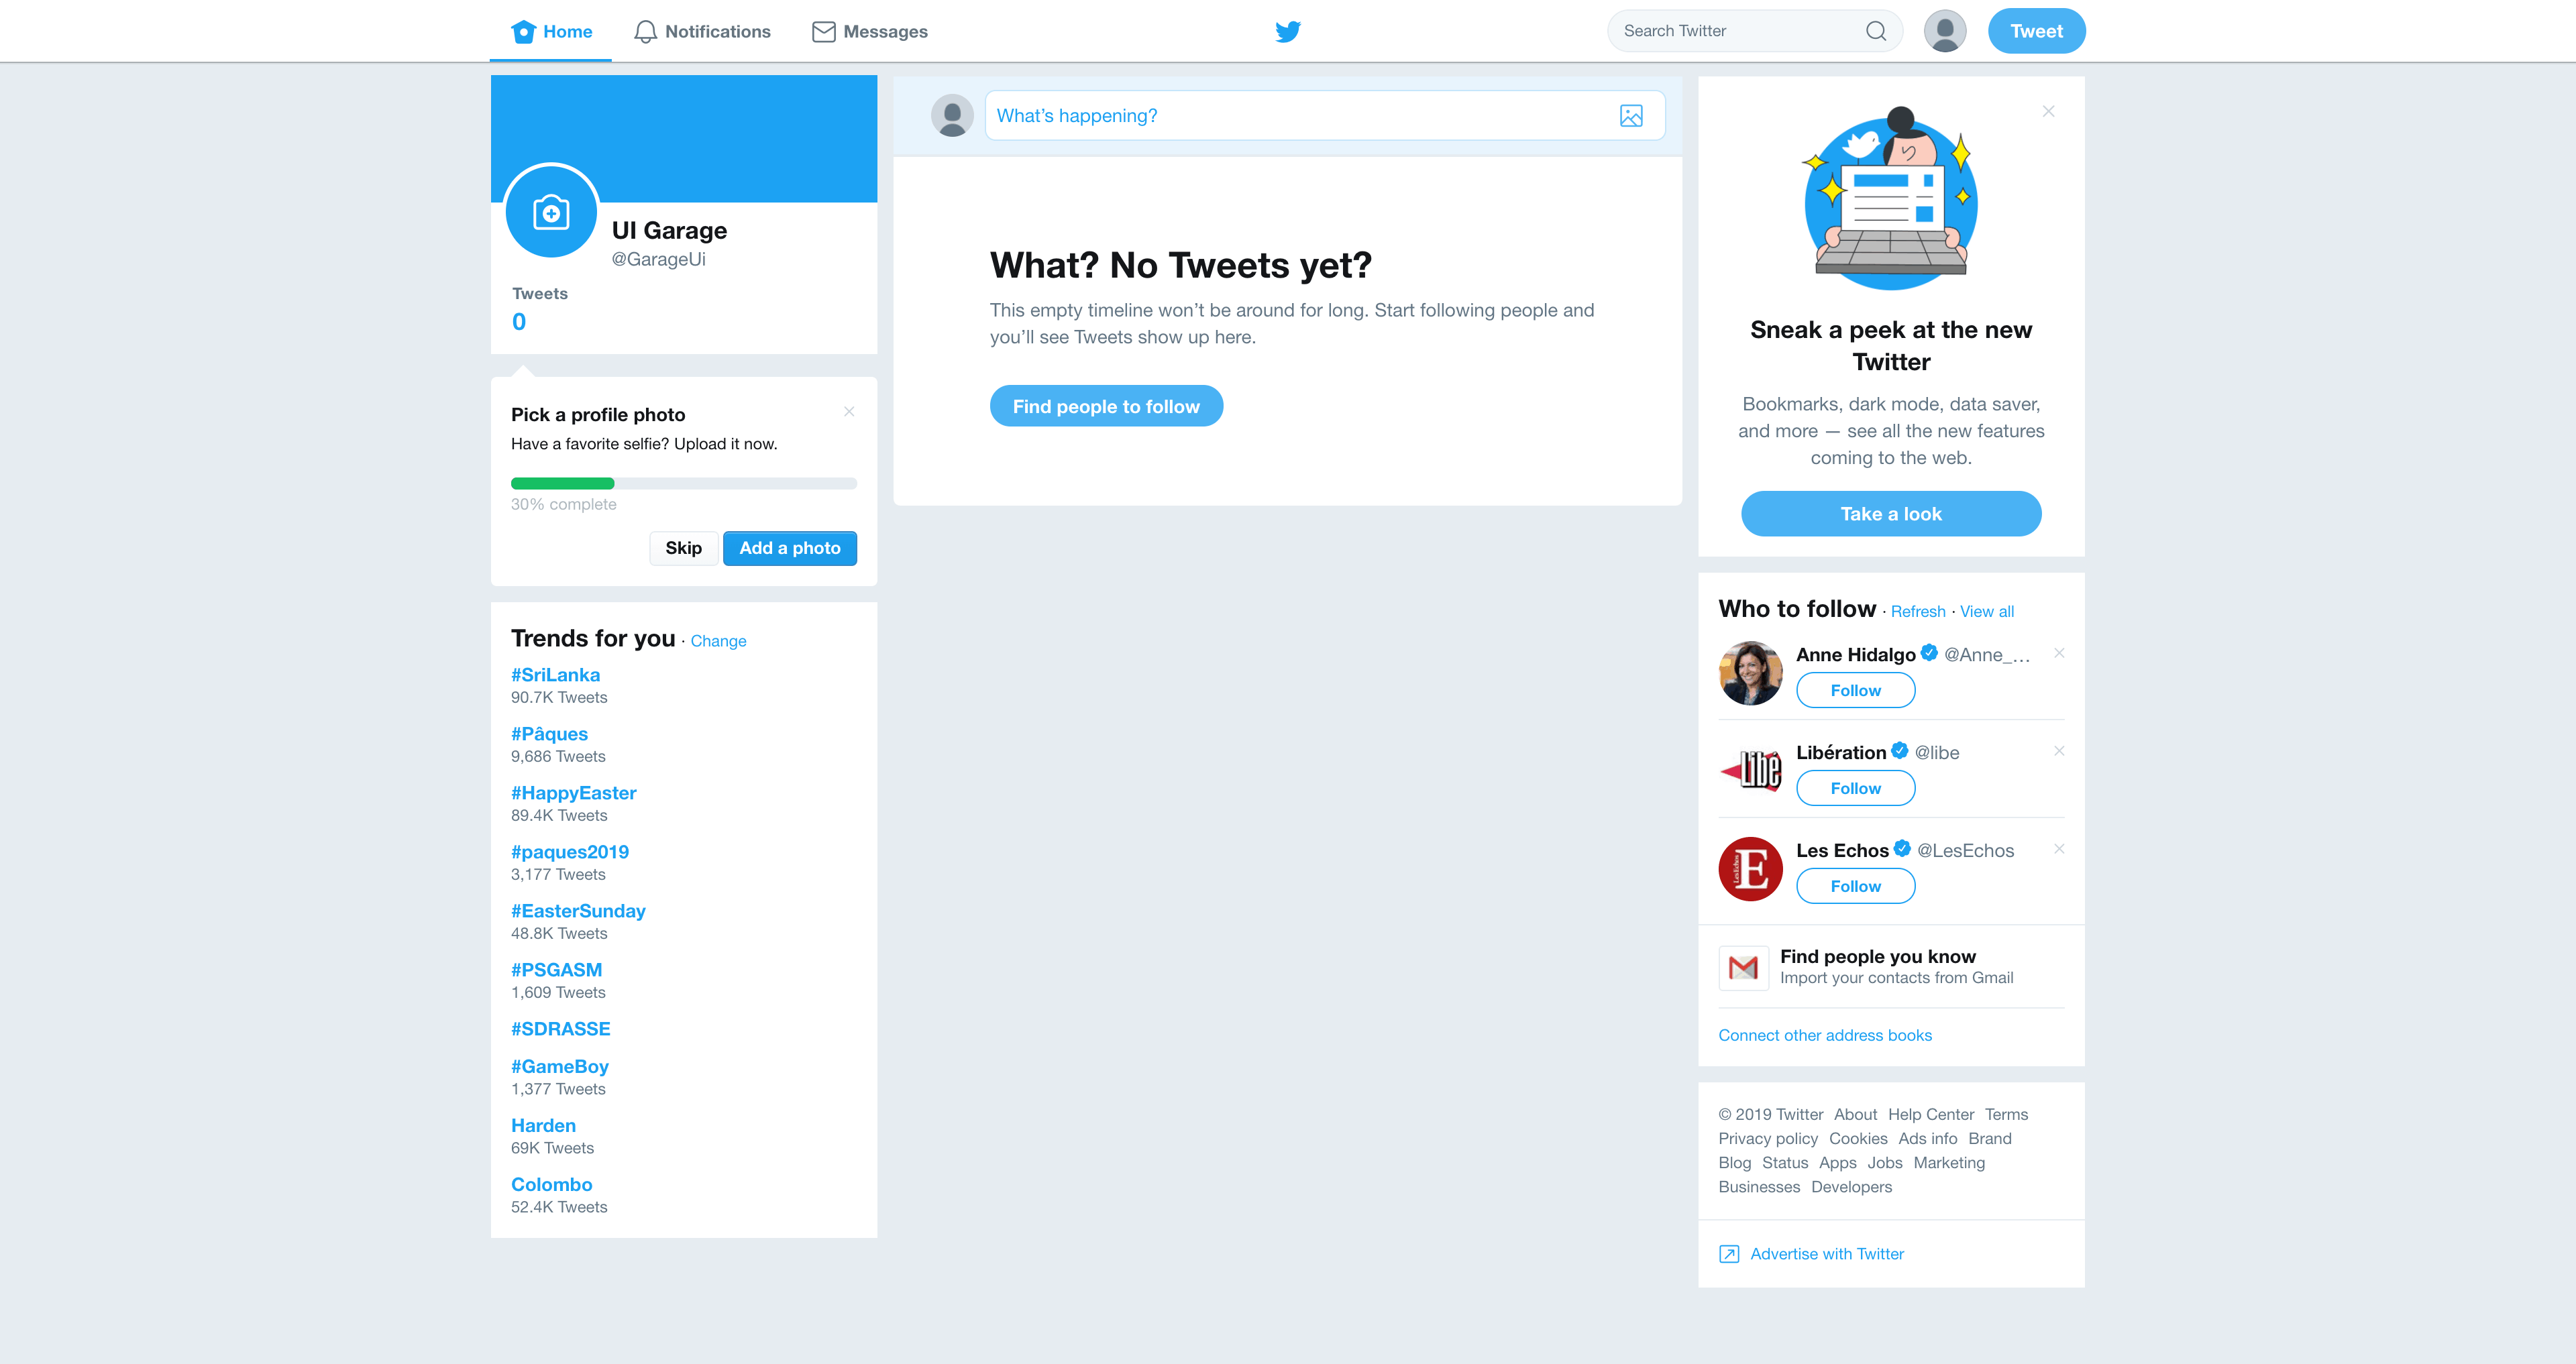 Home Page by Twitter from UIGarage